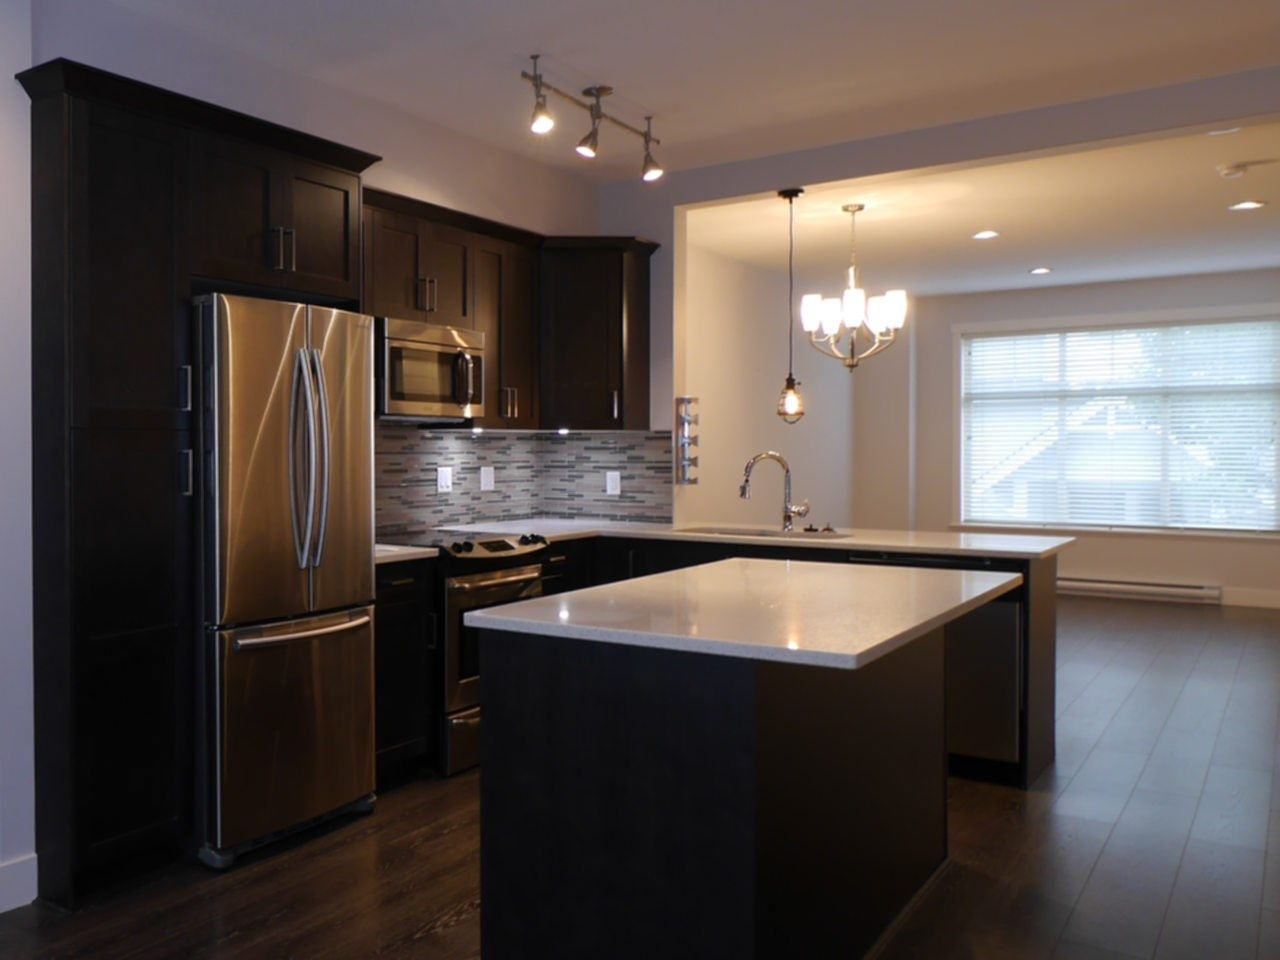 """Photo 8: Photos: 36 19525 73 Avenue in Surrey: Clayton Townhouse for sale in """"Uptown Clayton"""" (Cloverdale)  : MLS®# R2069814"""